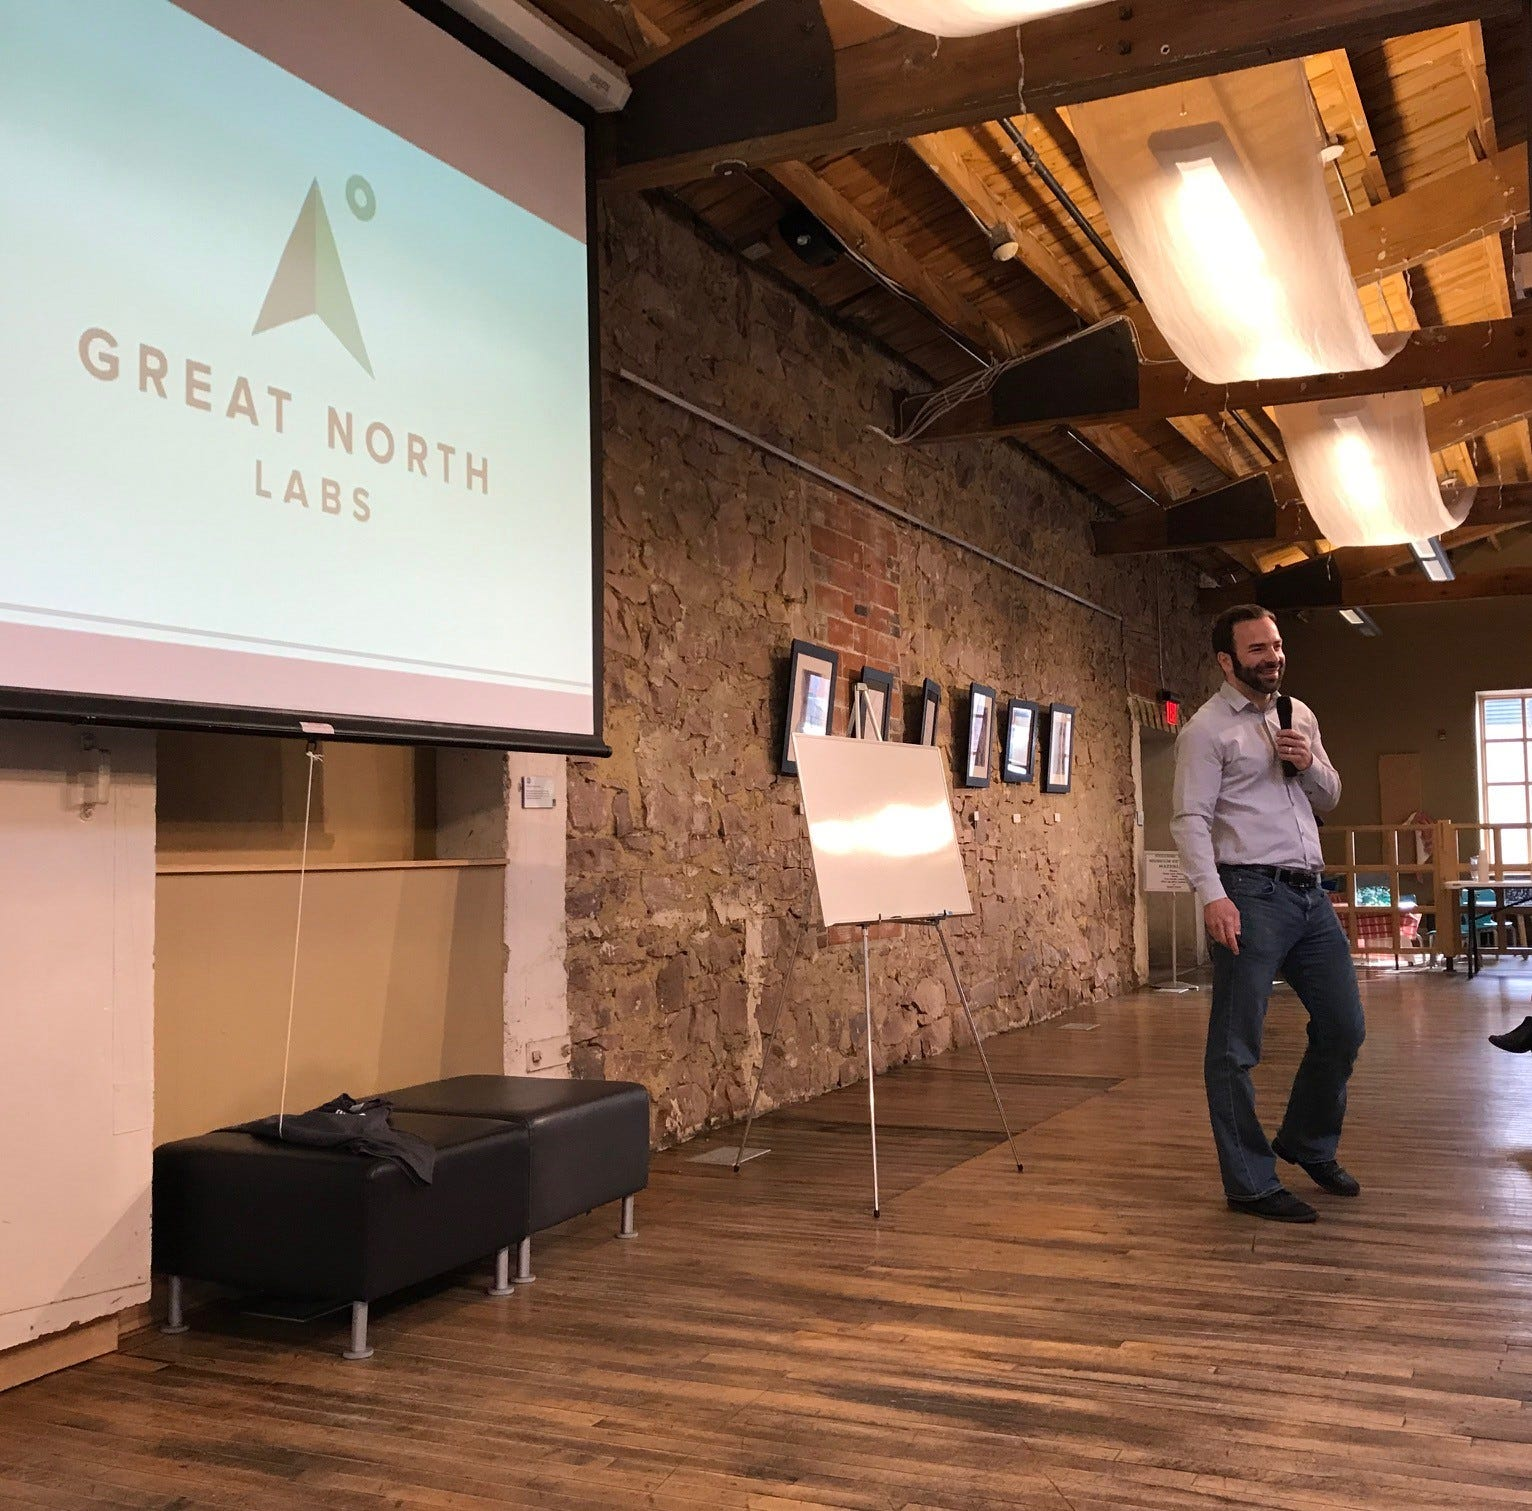 Venture capital fund Great North Labs eyeing Sioux Falls tech startup scene